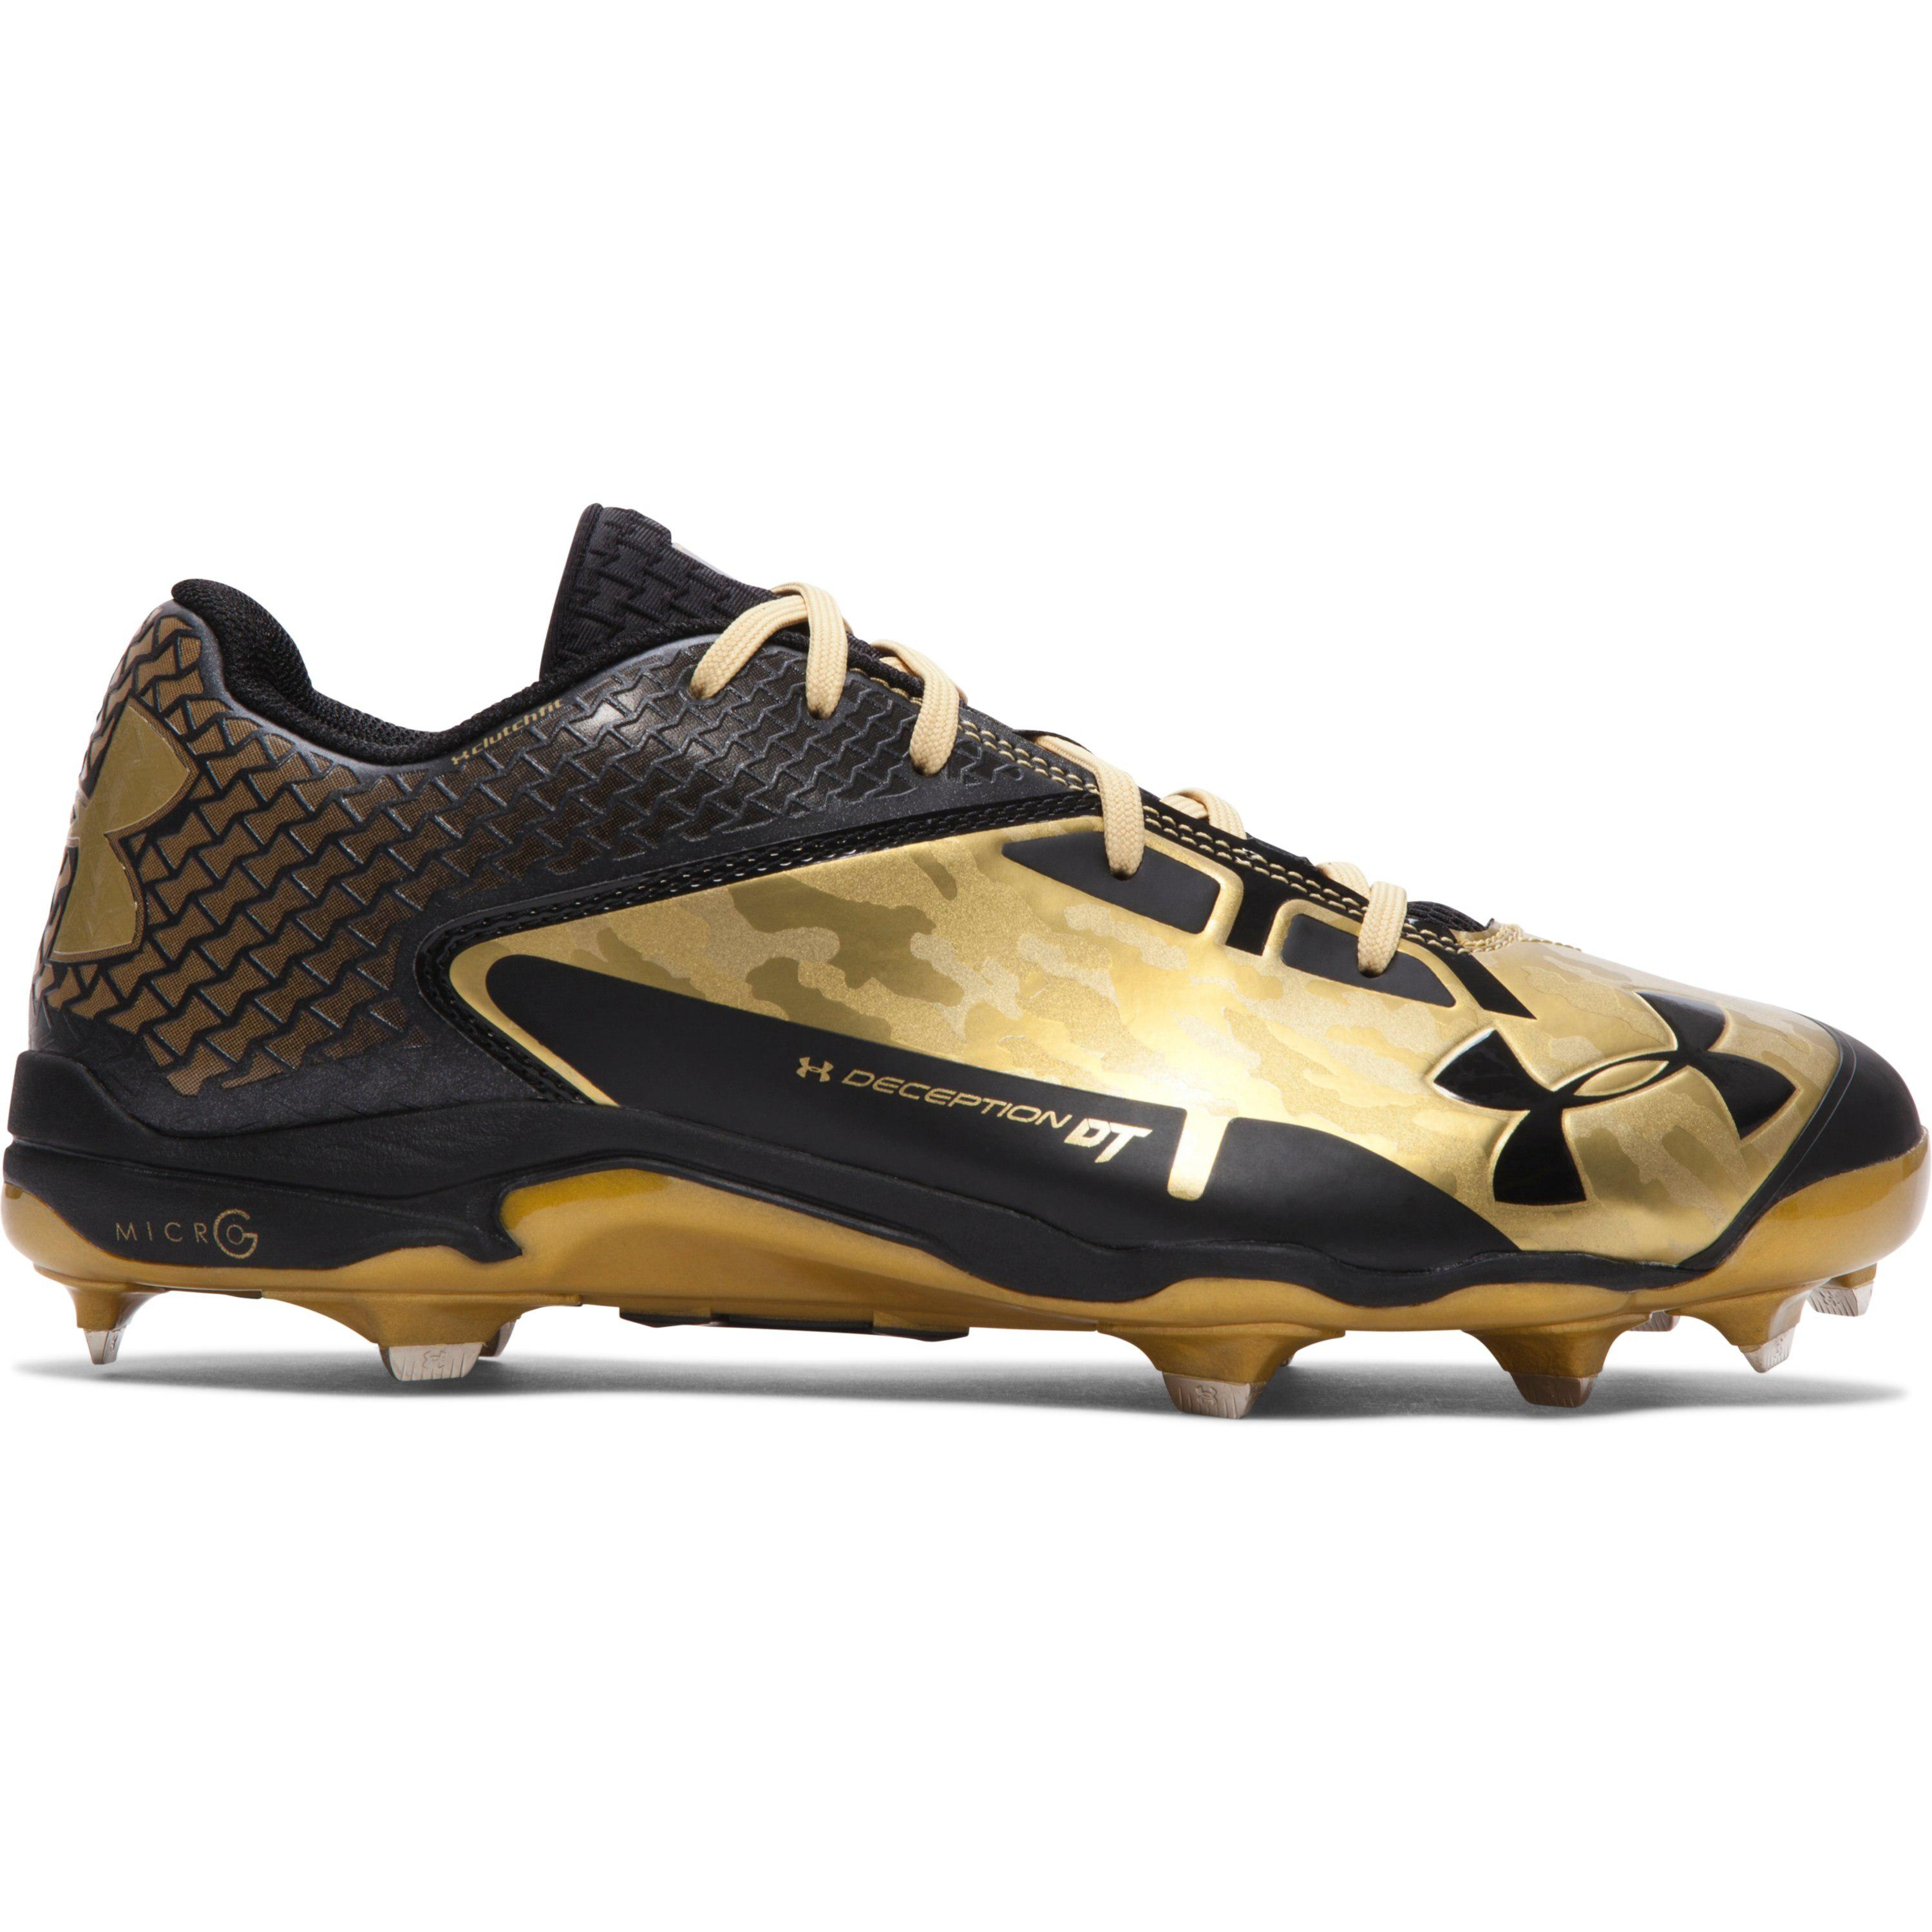 Under Armour Mens Deception Low DiamondTips Baseball Cleat